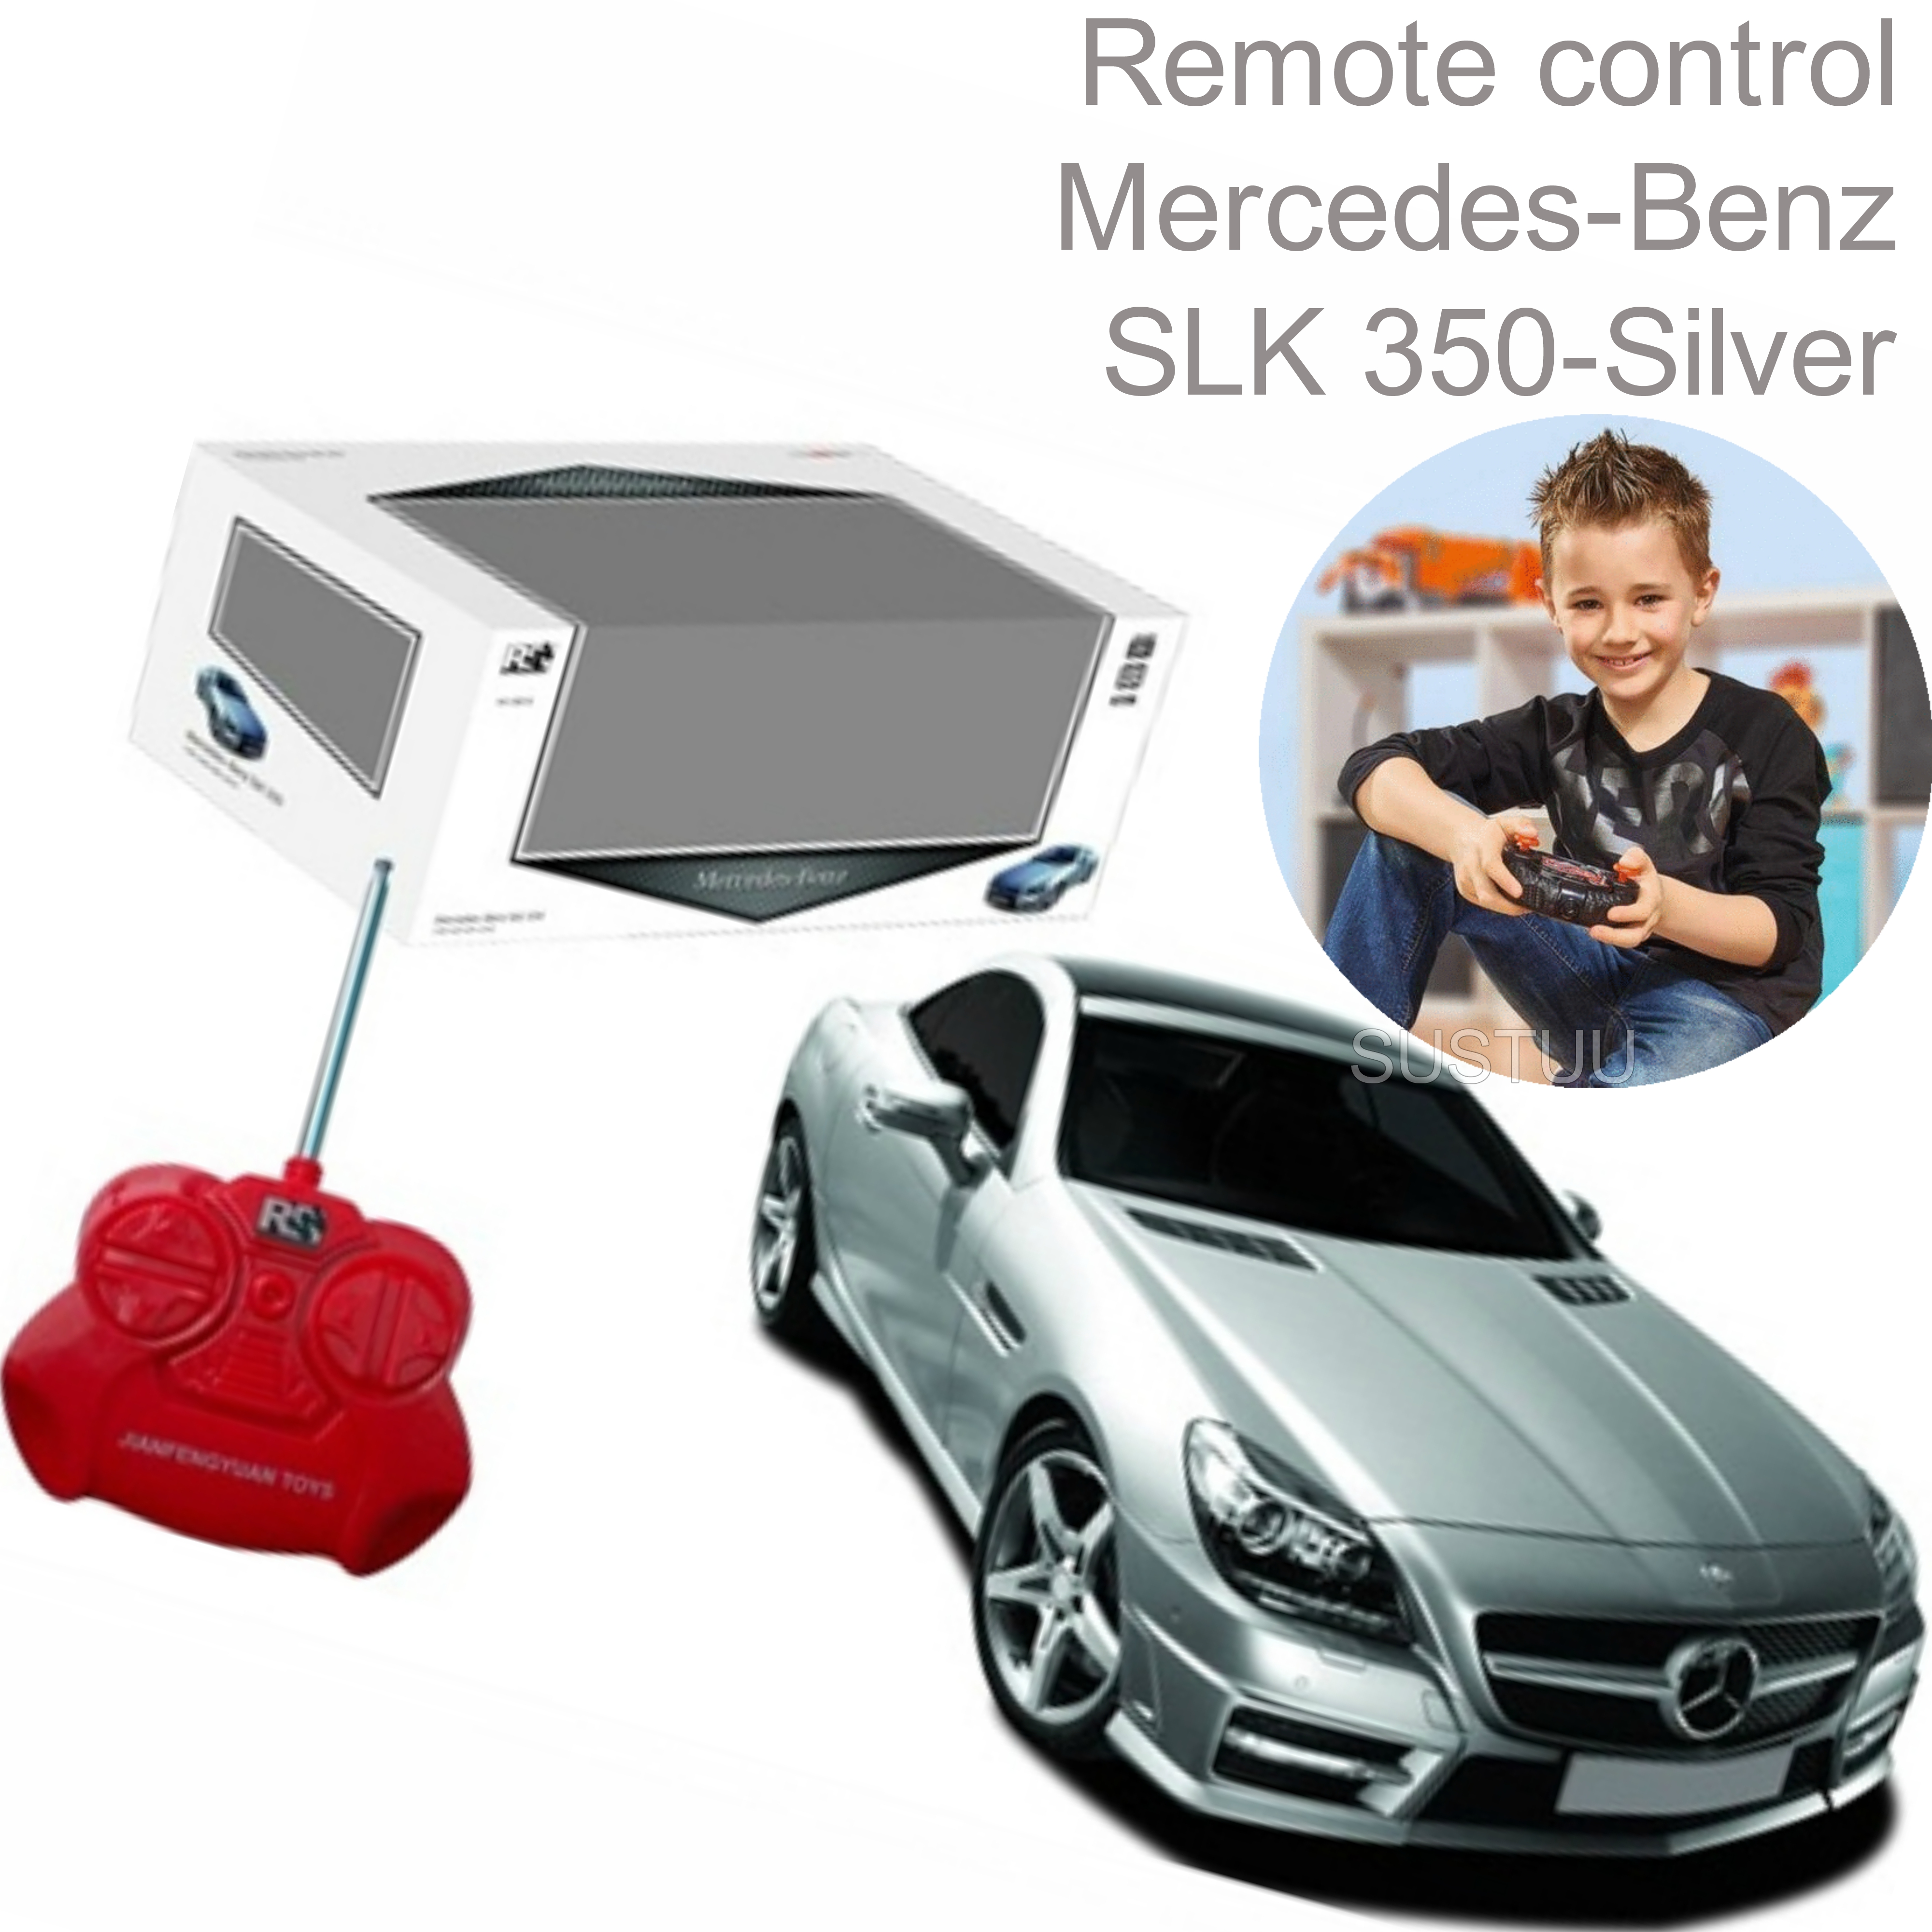 Remote control toy car kids model mercedes benz slk for Remote control mercedes benz